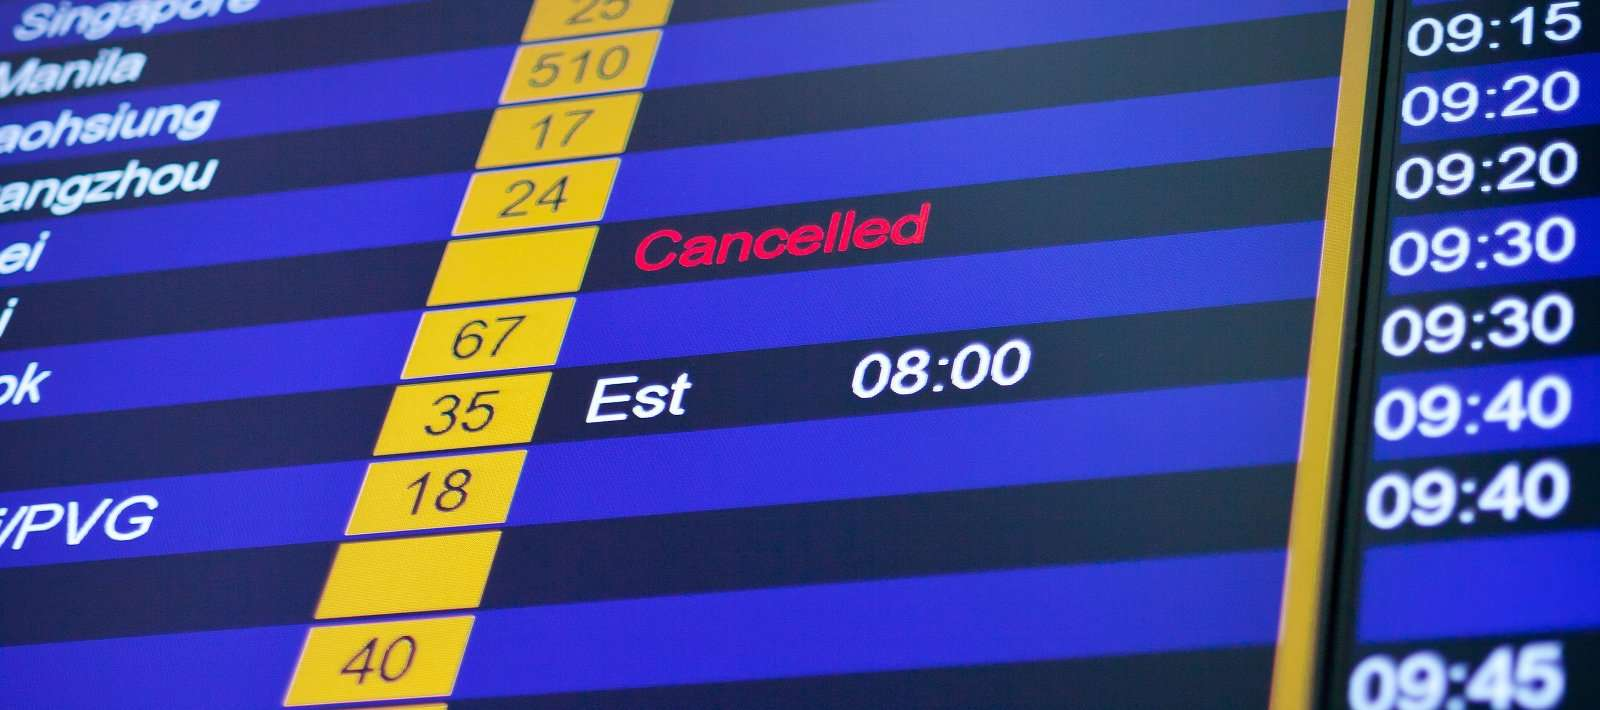 Travel disruption management: tech opportunities in the travel industry